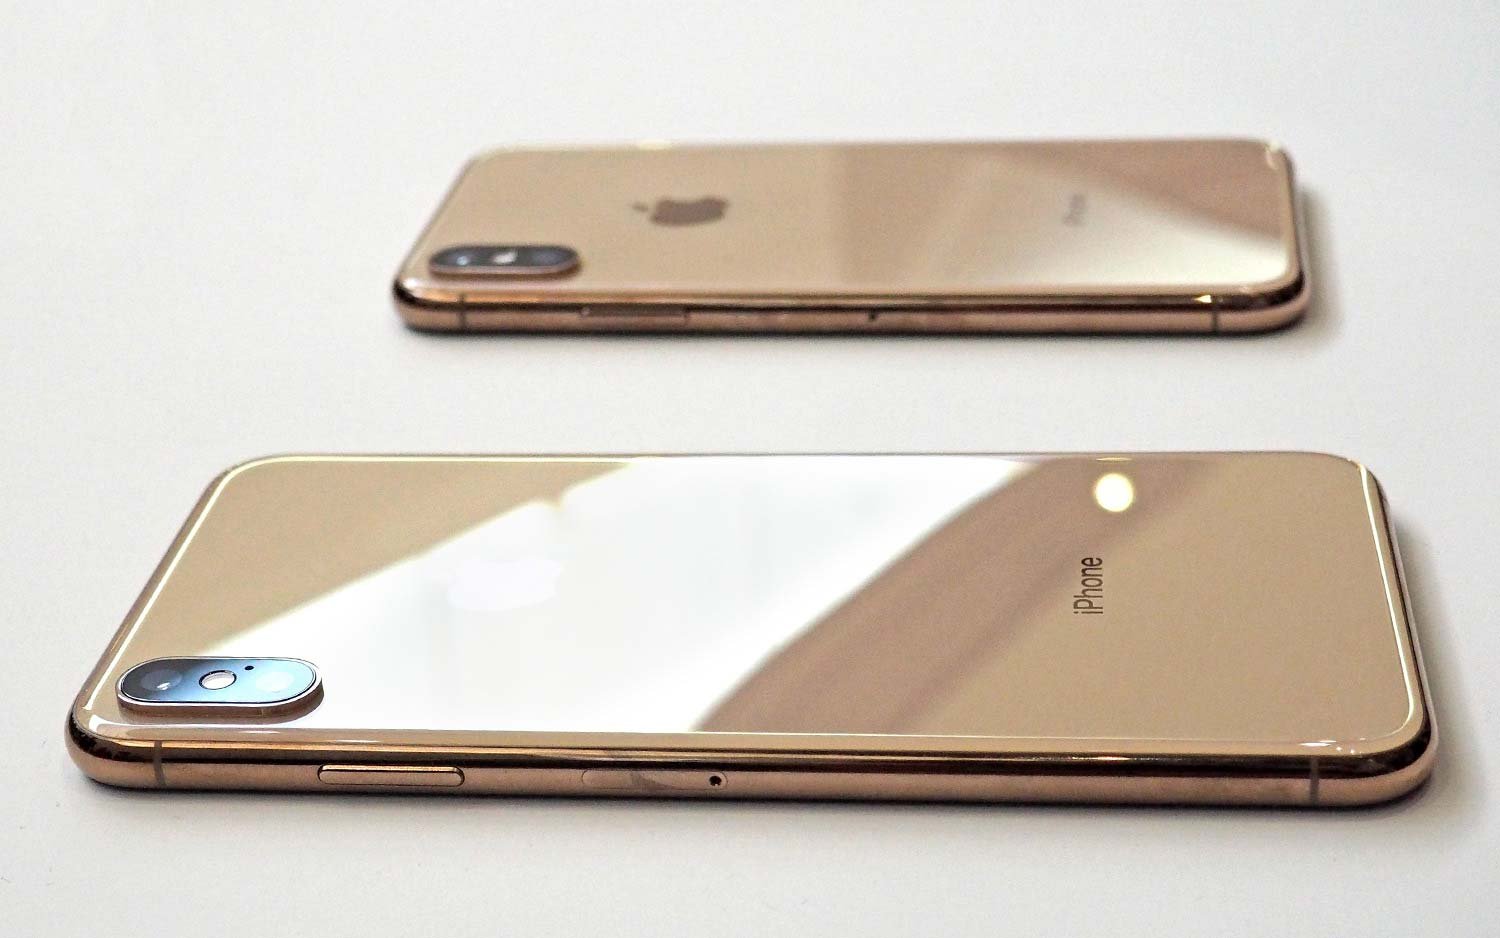 Fixing an iPhone Xs Max Costs the Same as a New iPhone 8